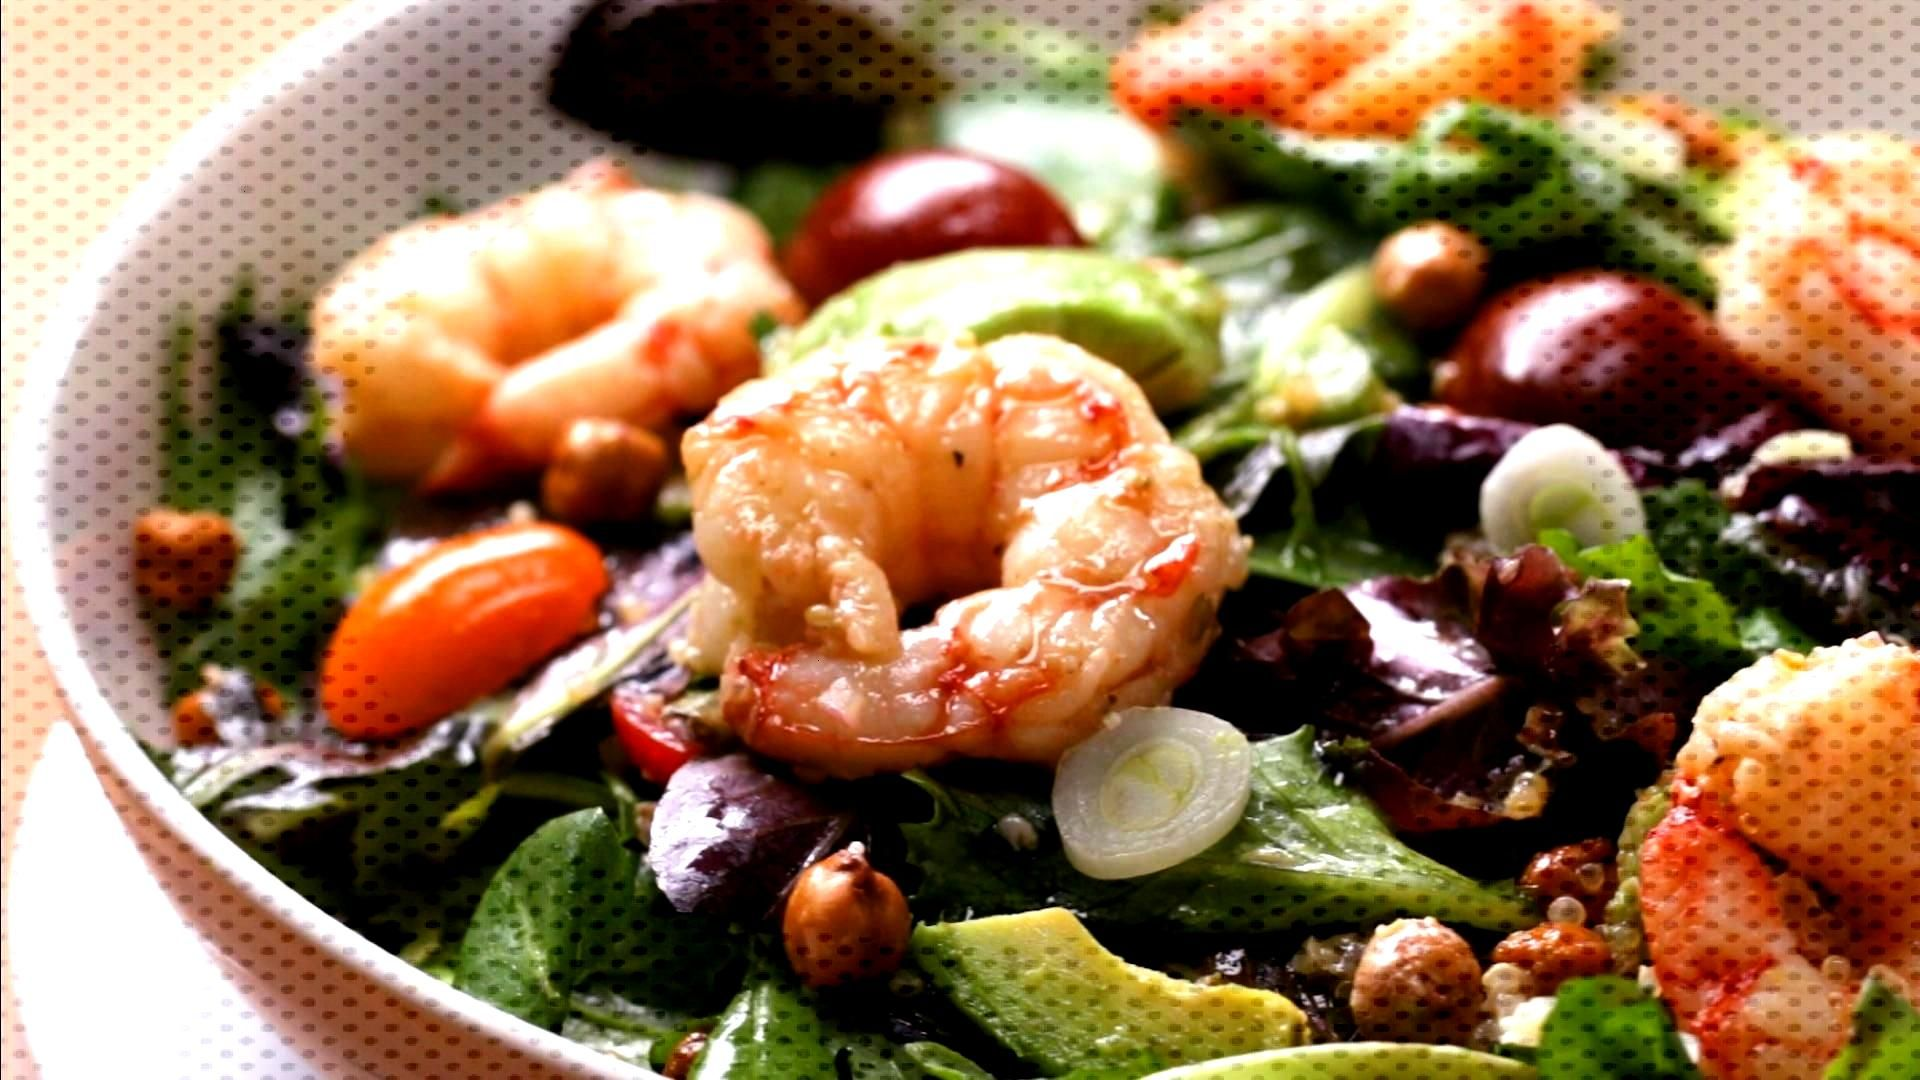 Seared Shrimp And Avocado Salad Recipe by Tasty Seared Shrimp And Avocado Salad Recipe by Tasty,